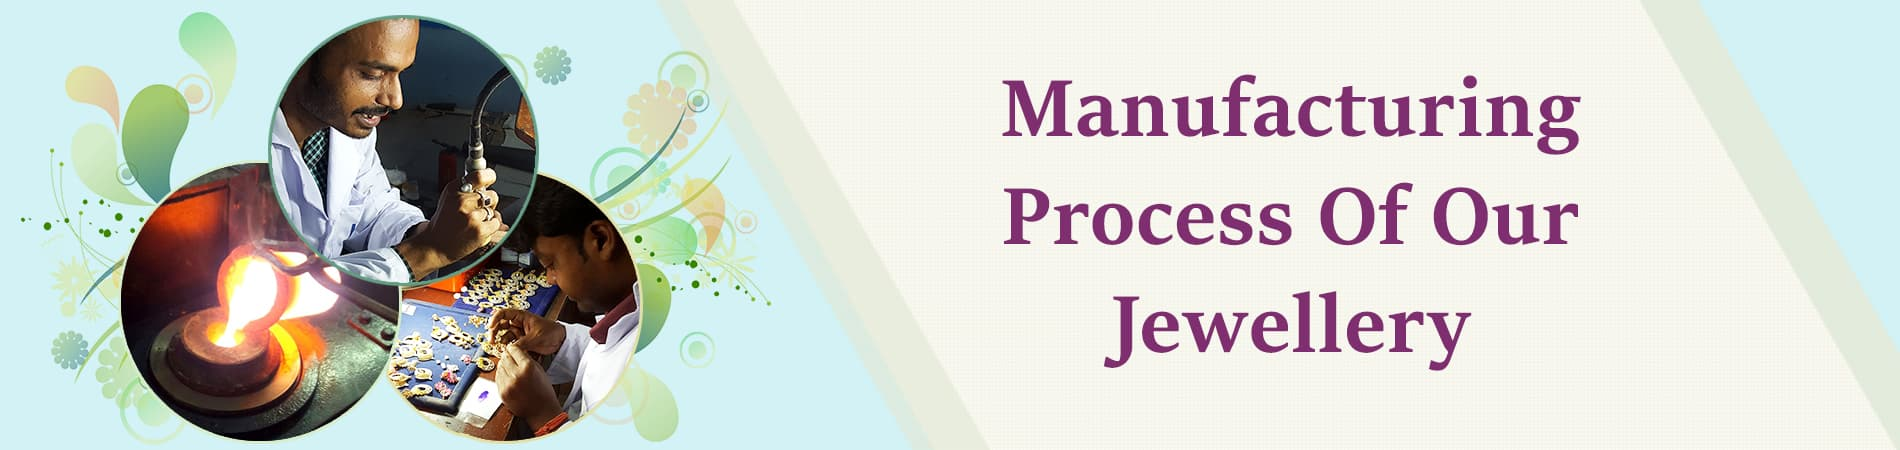 1598945470_1580714641_Manufacturing_Process_Of_Our_Jewellery.jpg